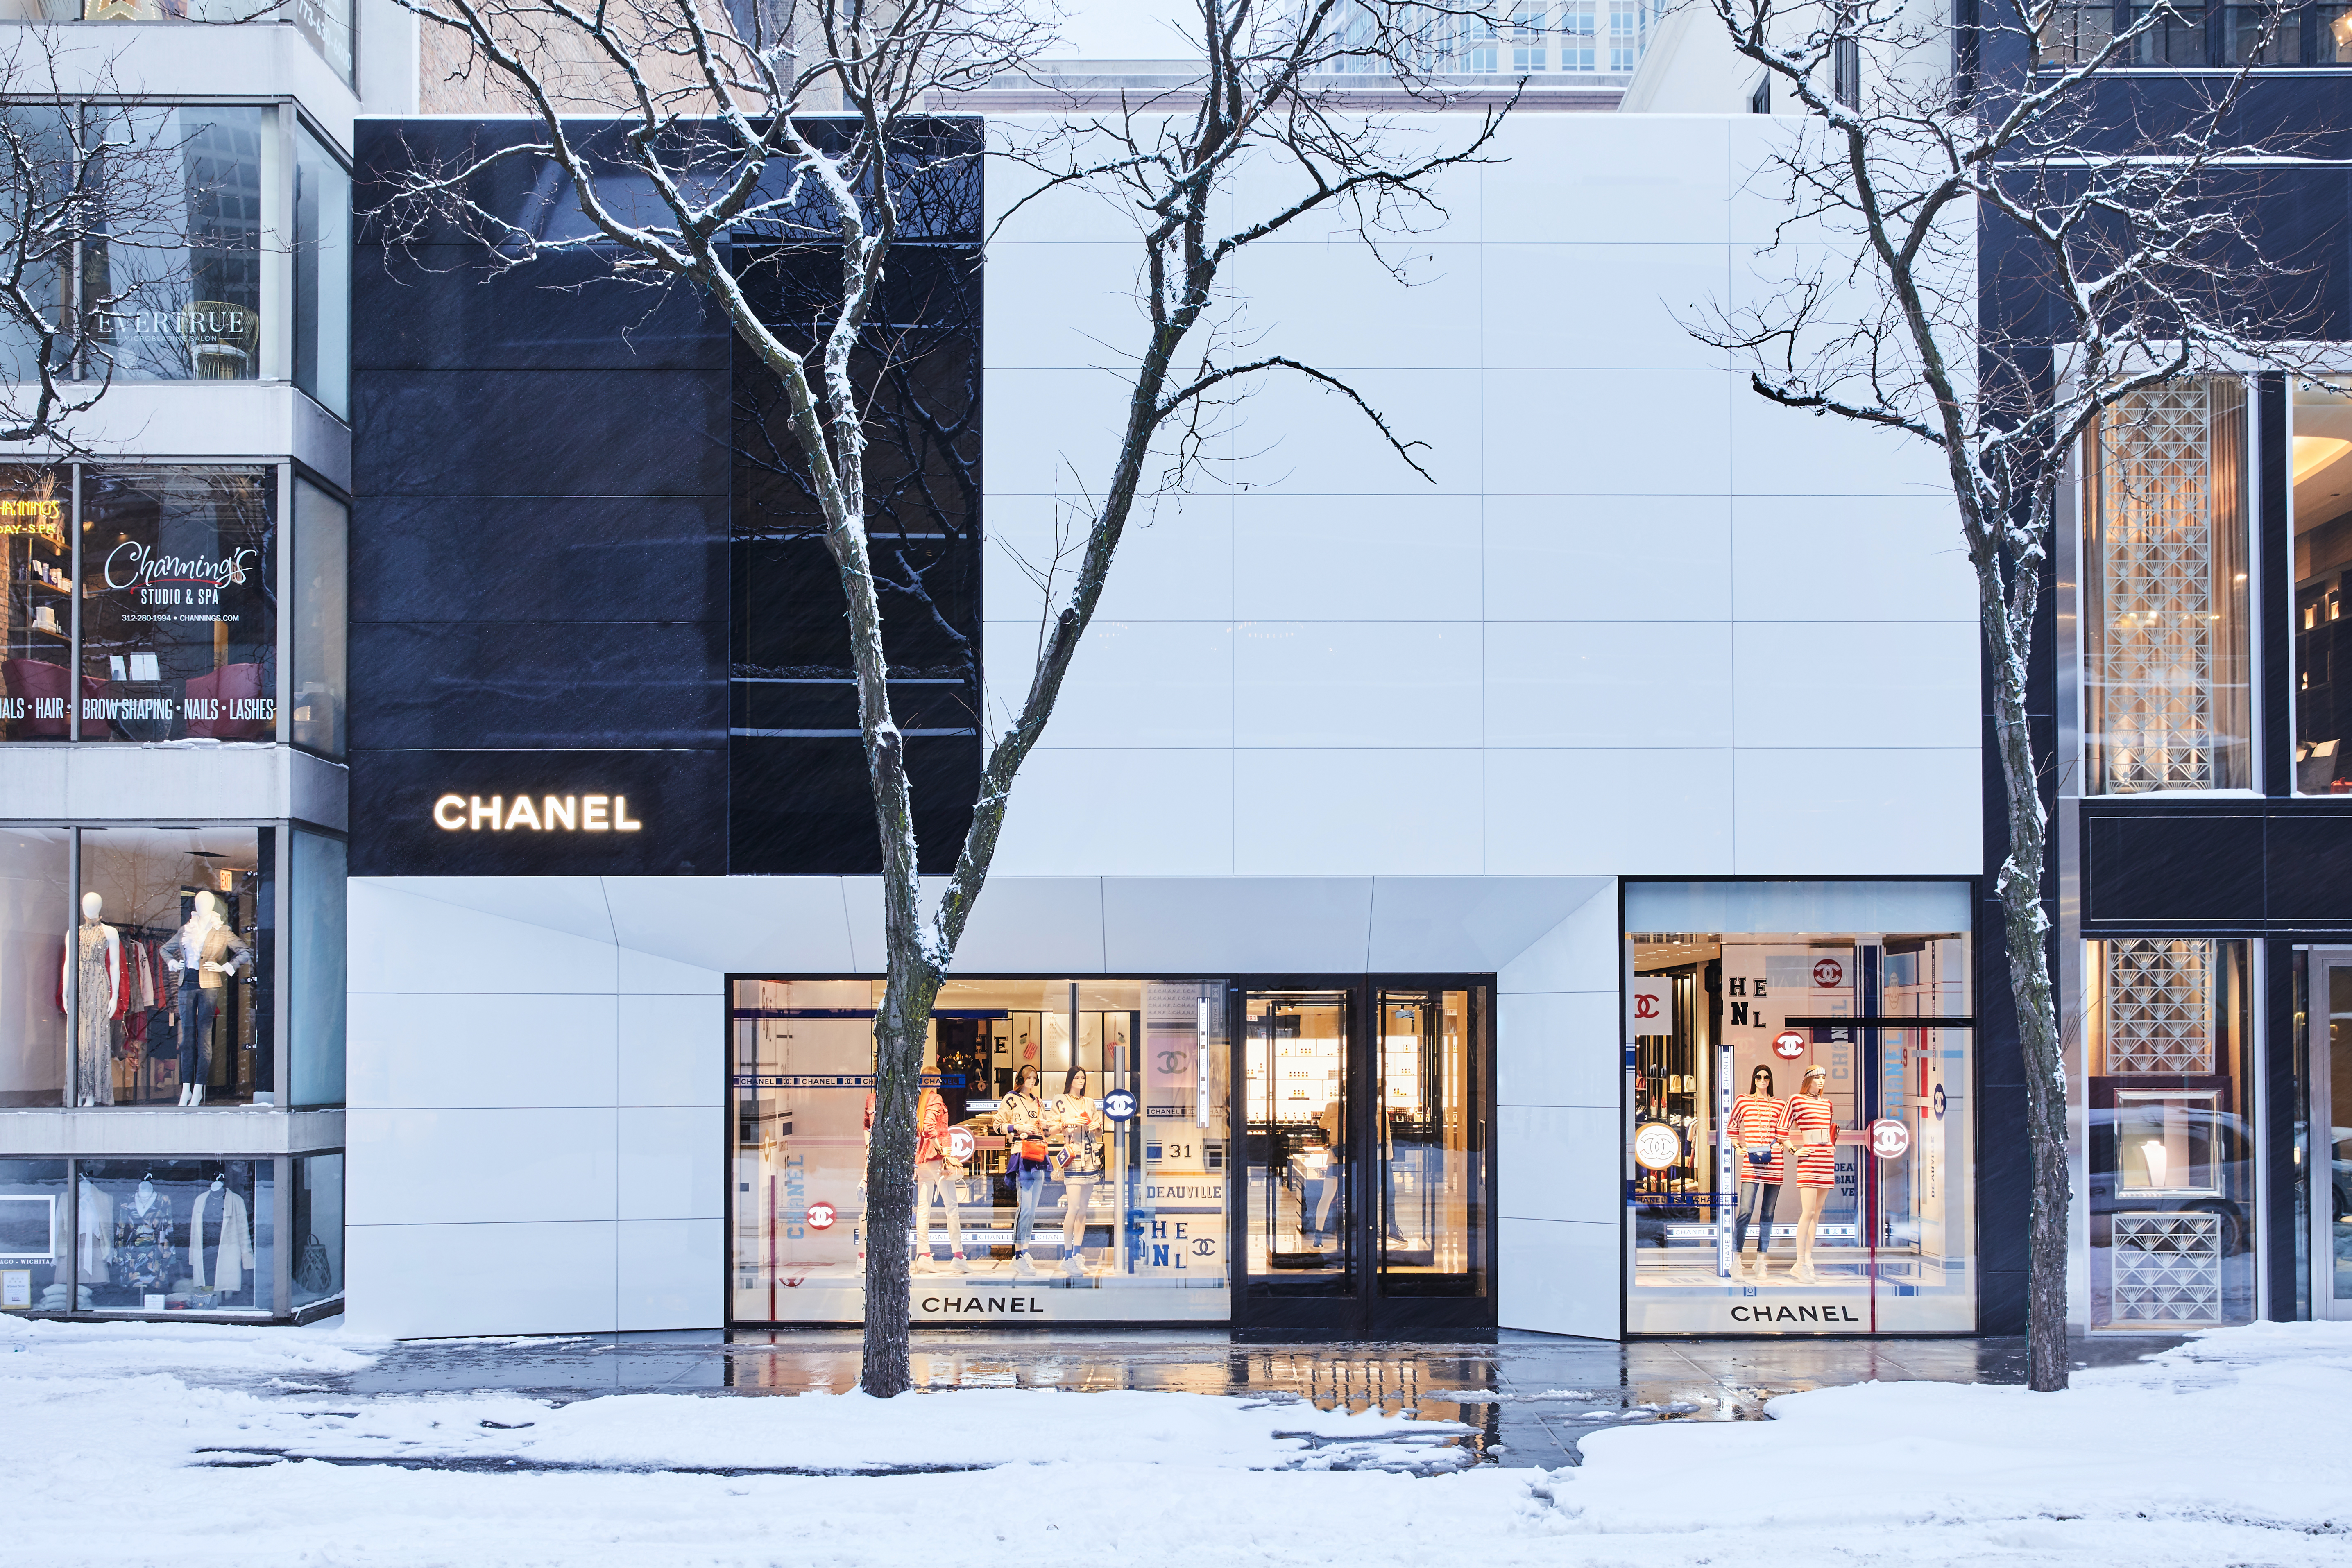 The exterior of the new Chanel store in Chicago, which was designed inside and out by Peter Marino.